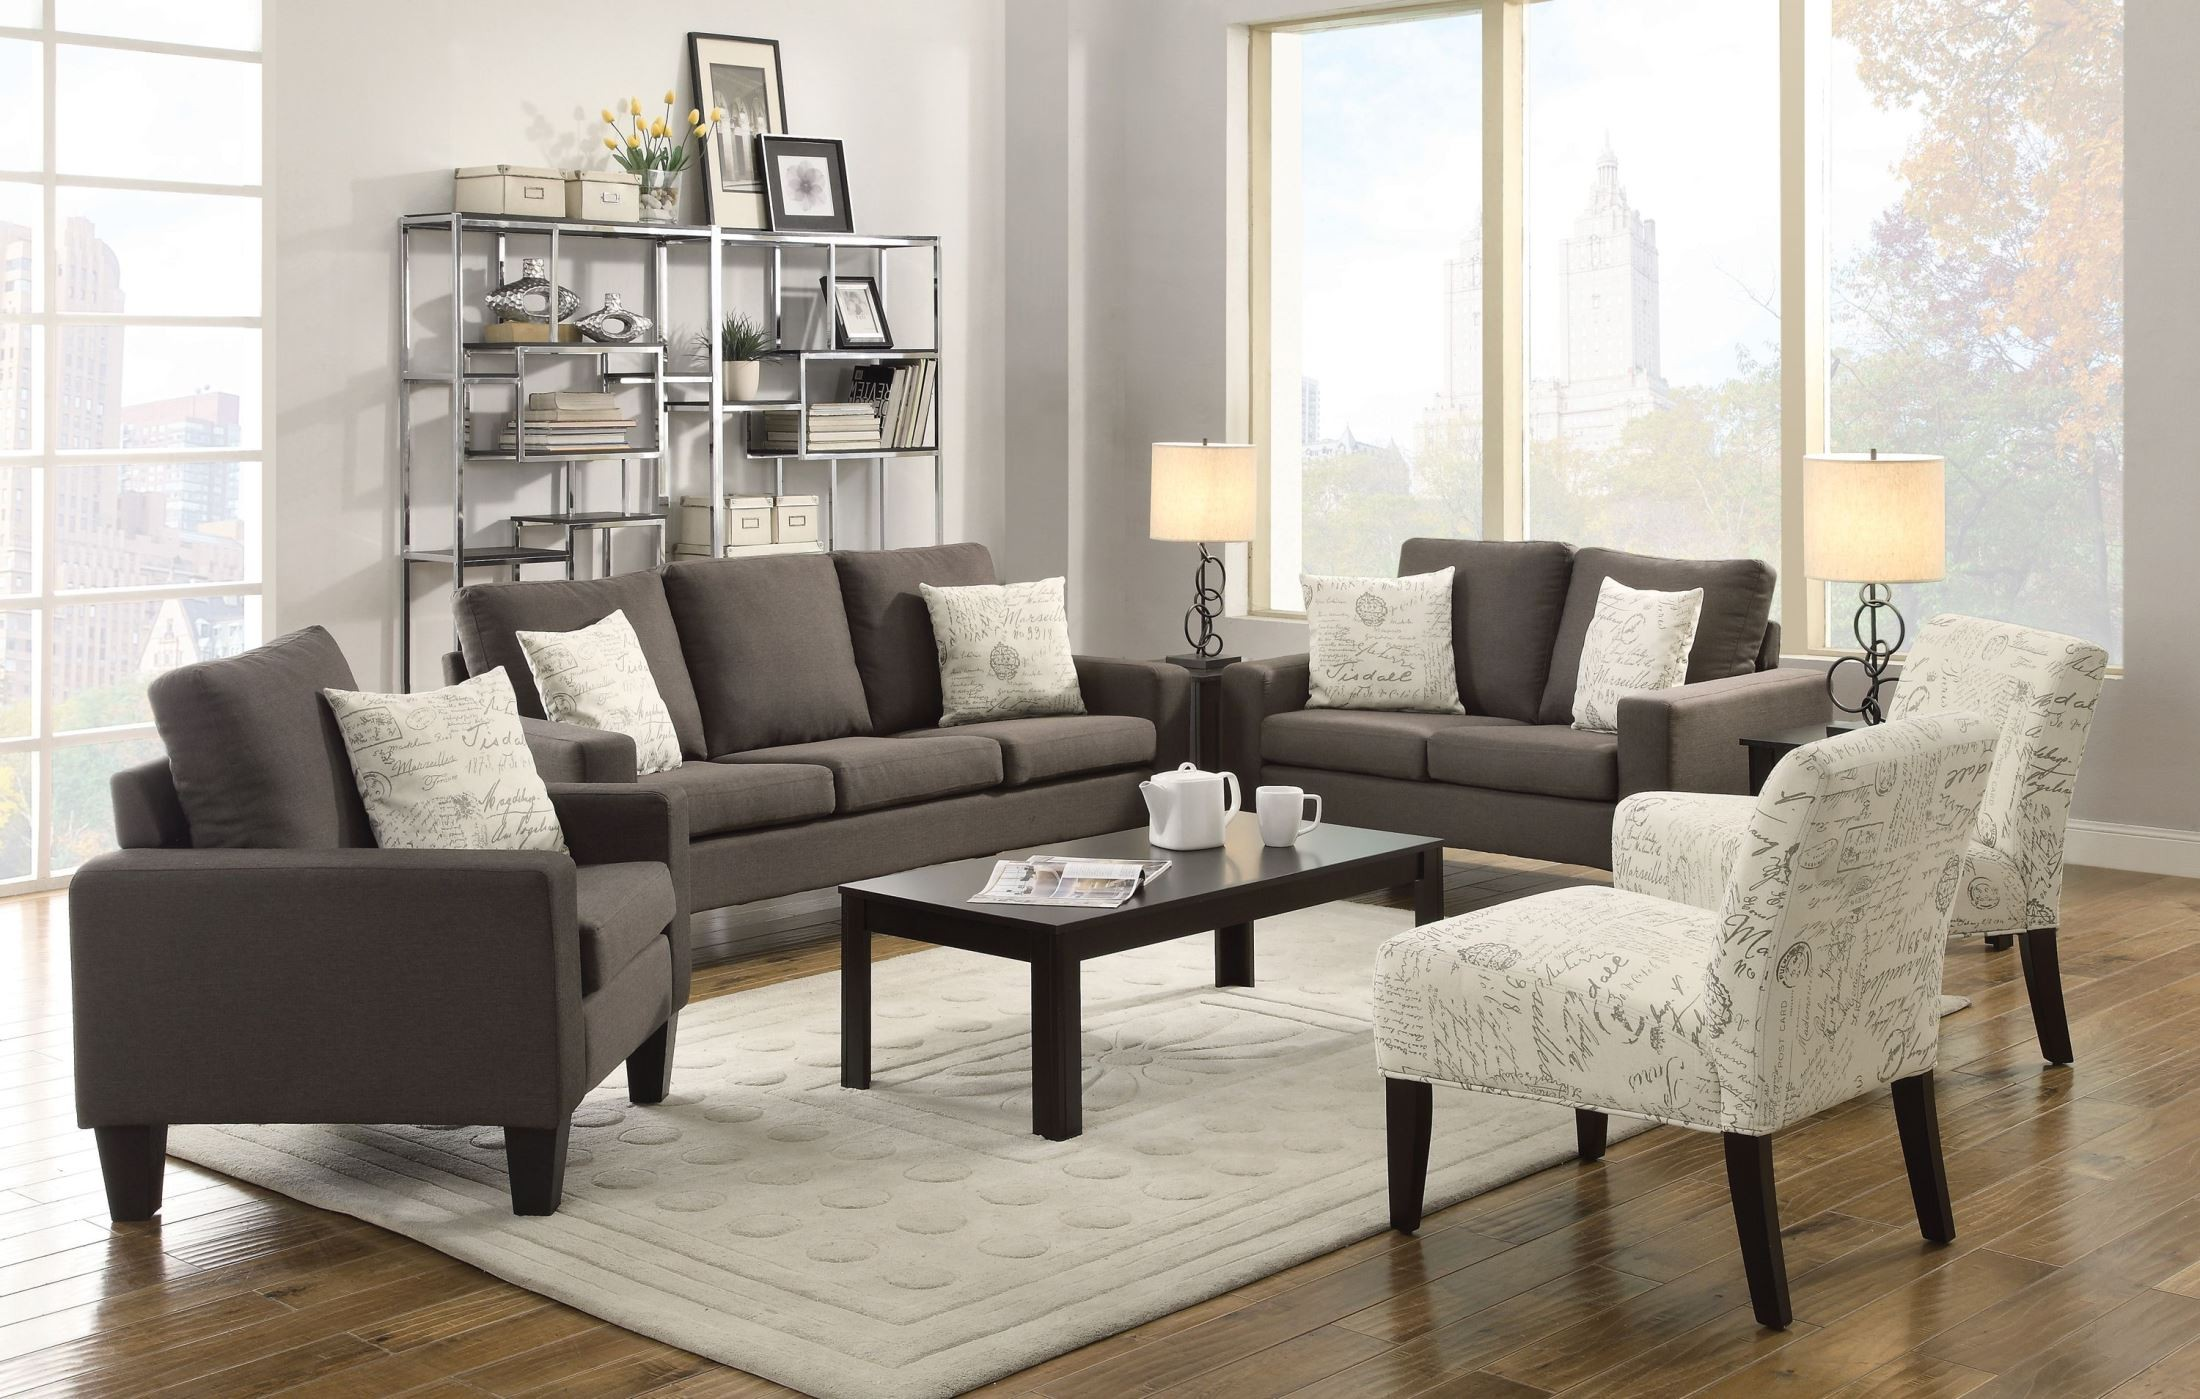 Bachman Grey Living Room Set from Coaster 504764